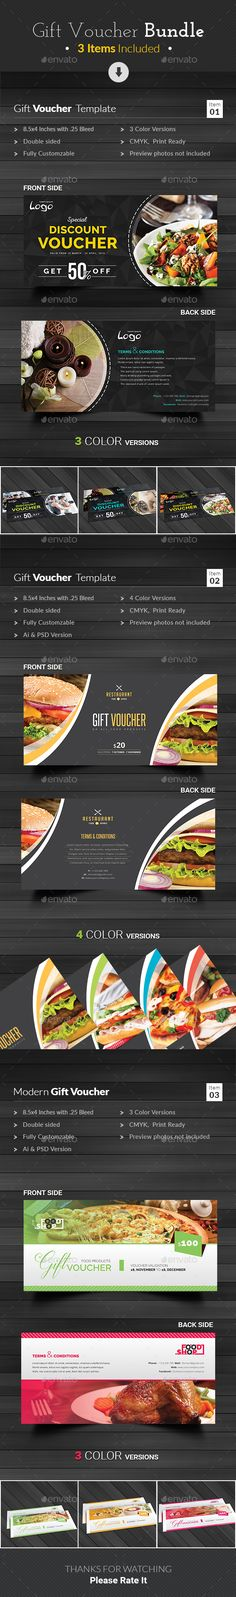 Buy Gift Voucher by themedevisers on GraphicRiver. This Gift Voucher Bundle is best suitable for promoting your business, product or services like beauty salon, spa cen. Gift Voucher Design, Gift Box Design, Print Templates, Design Templates, Discount Vouchers, Gift Vouchers, Best Gifts, Number Fonts, Loyalty Cards